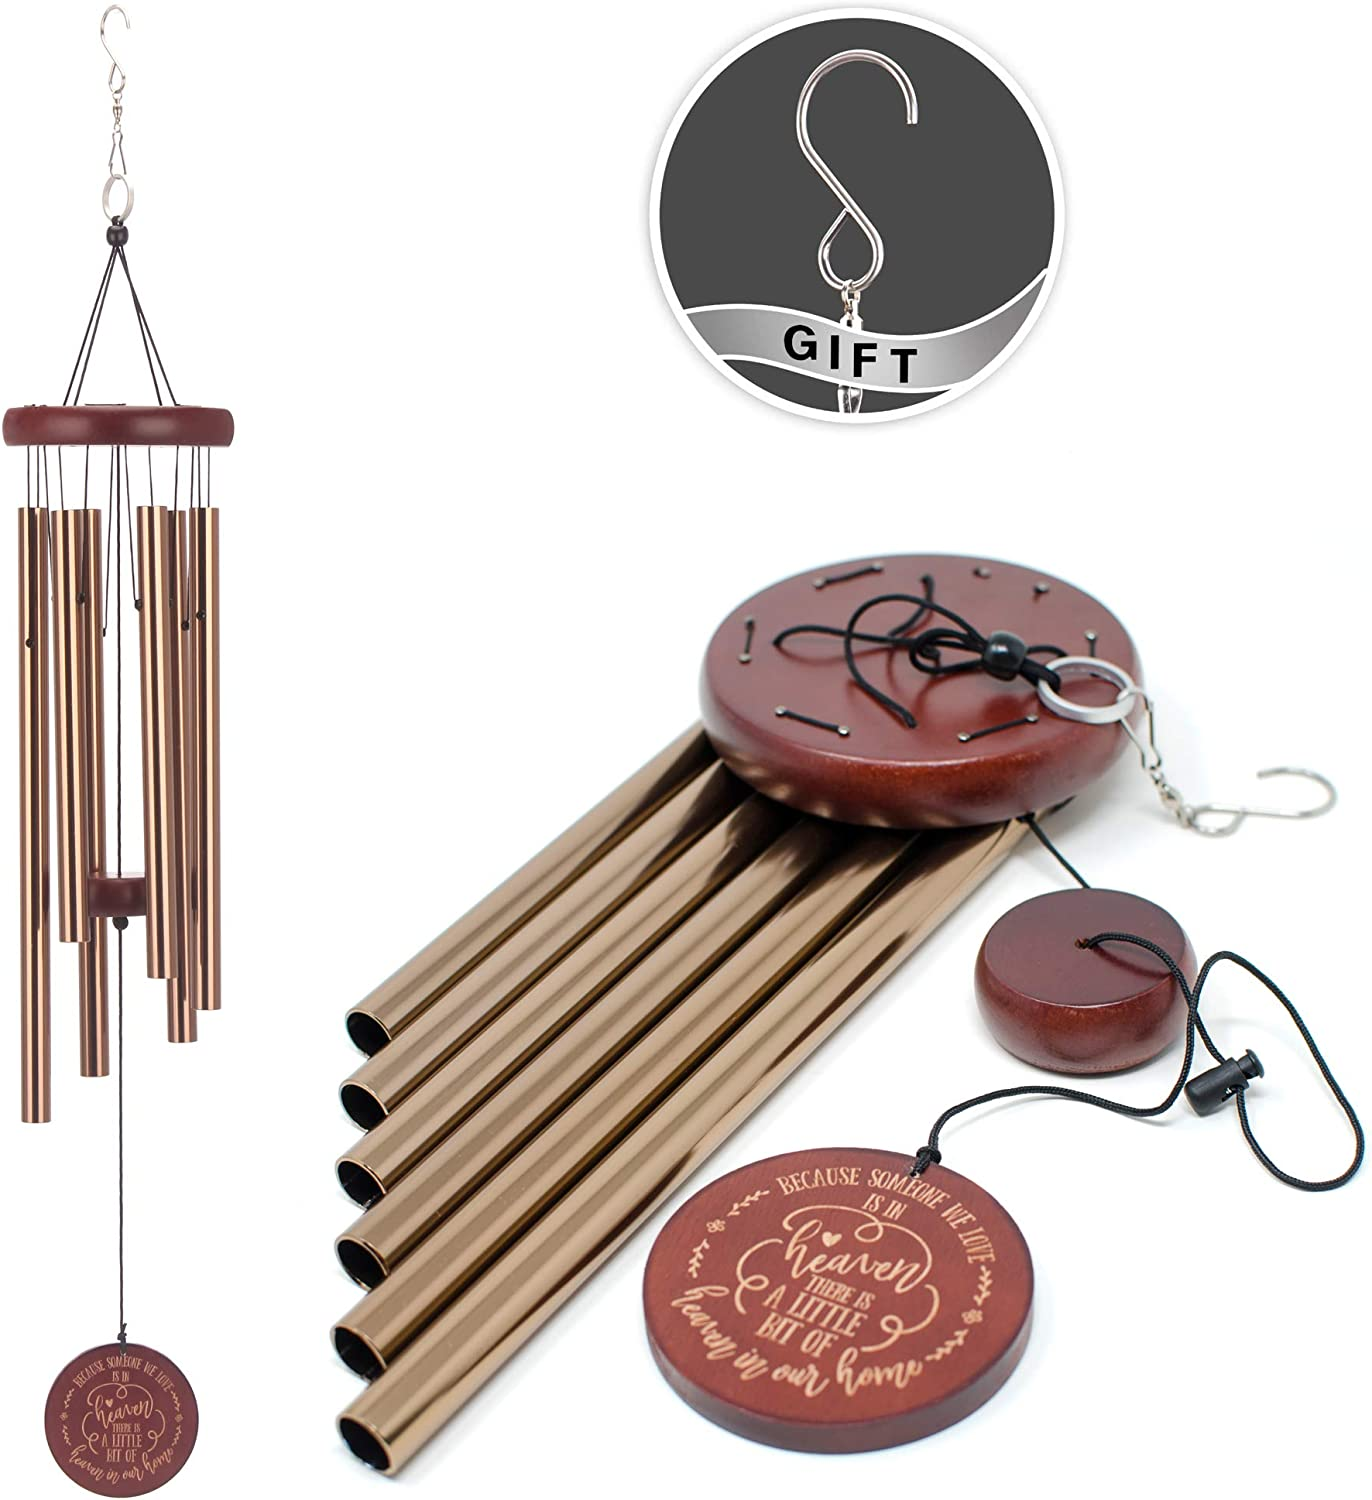 COOME Memorial Wind Chimes Outdoor Beauty products Large Sympa Inch 30 Tone Selling rankings Deep